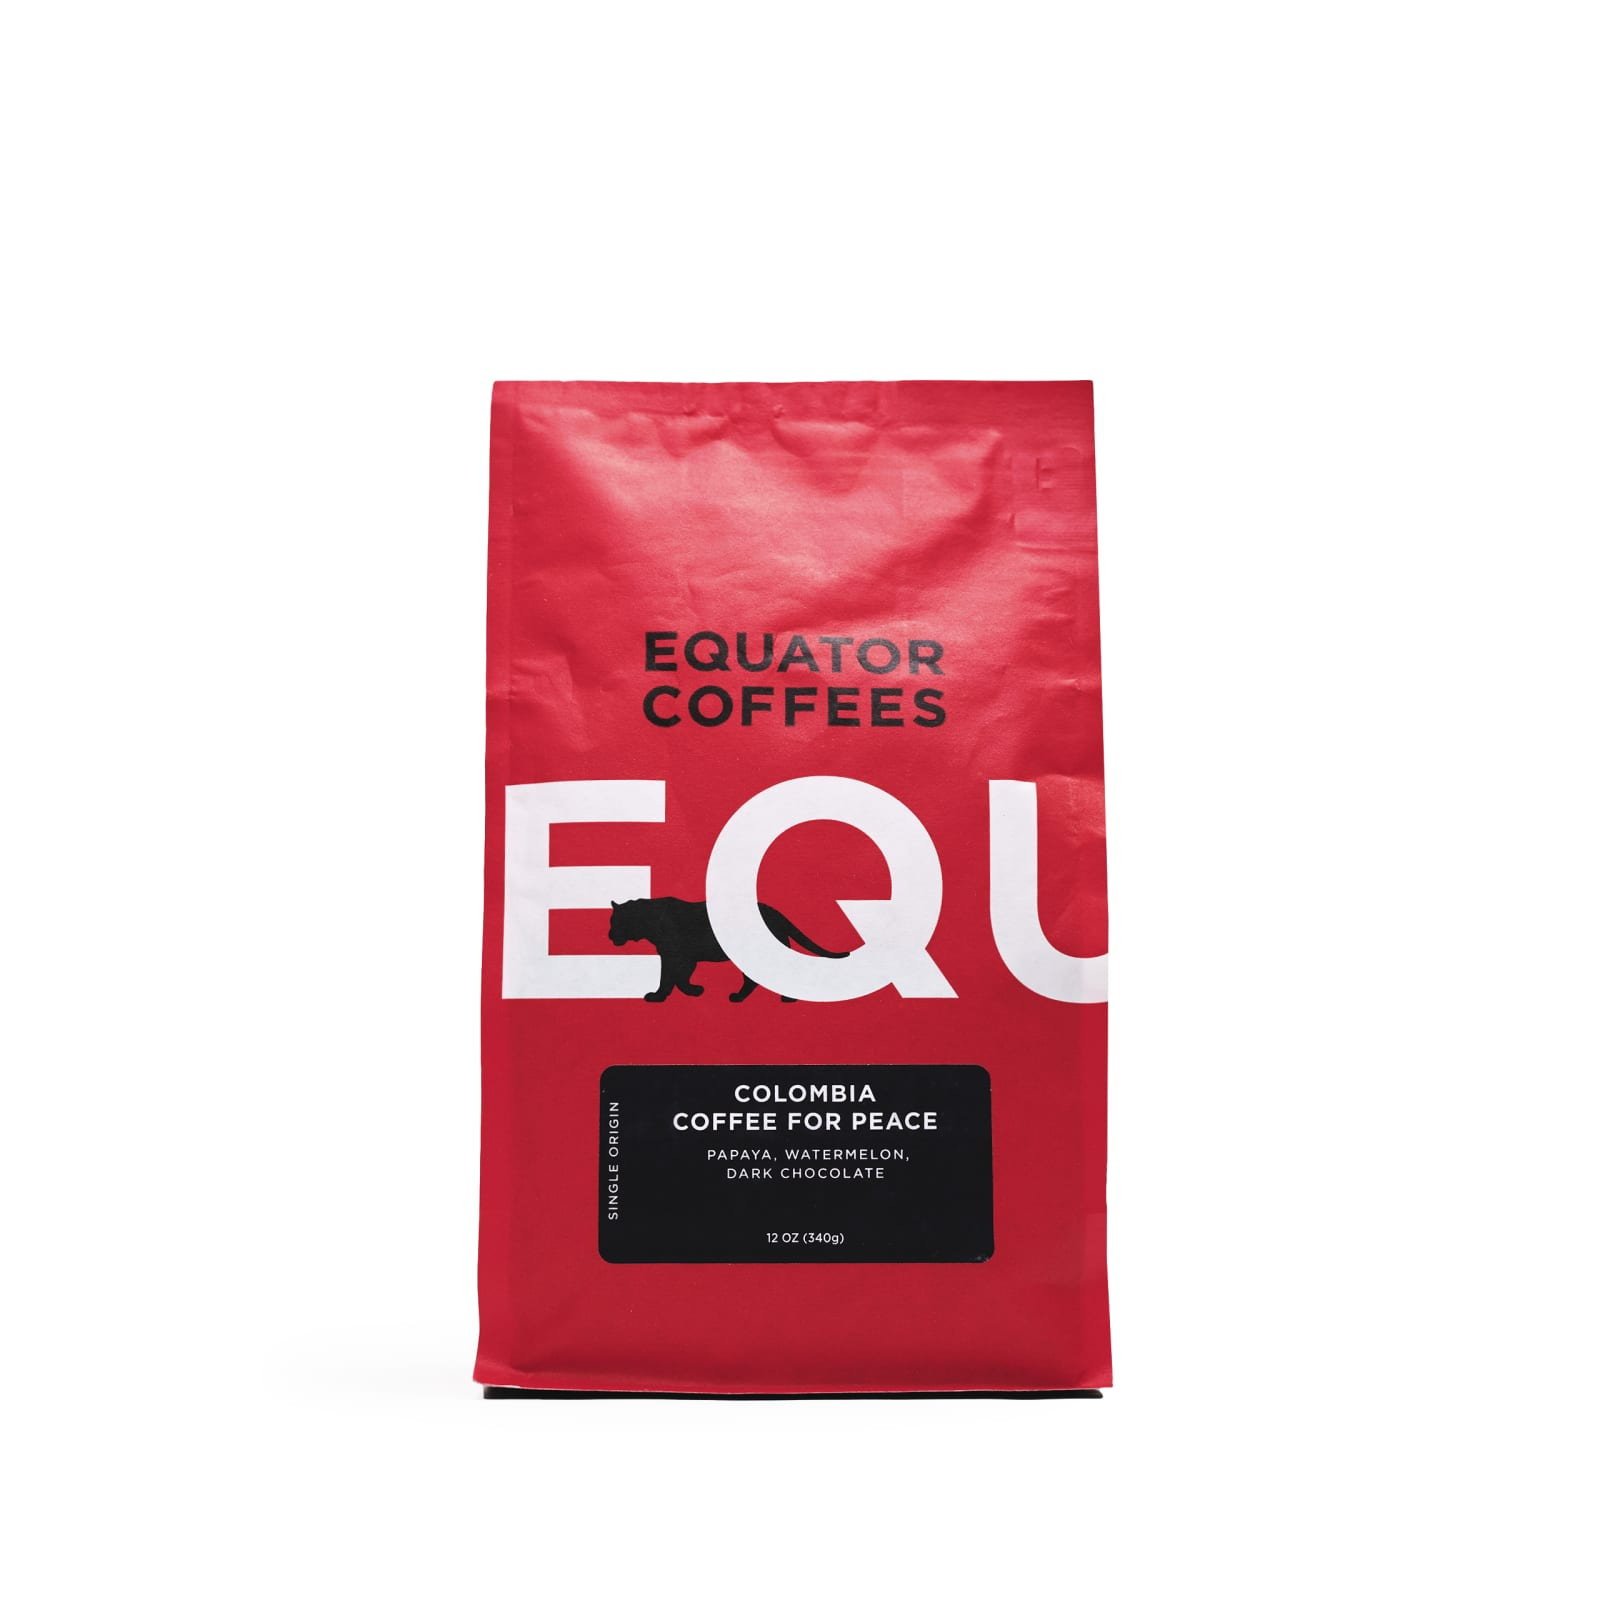 Colombia Coffee for Peace